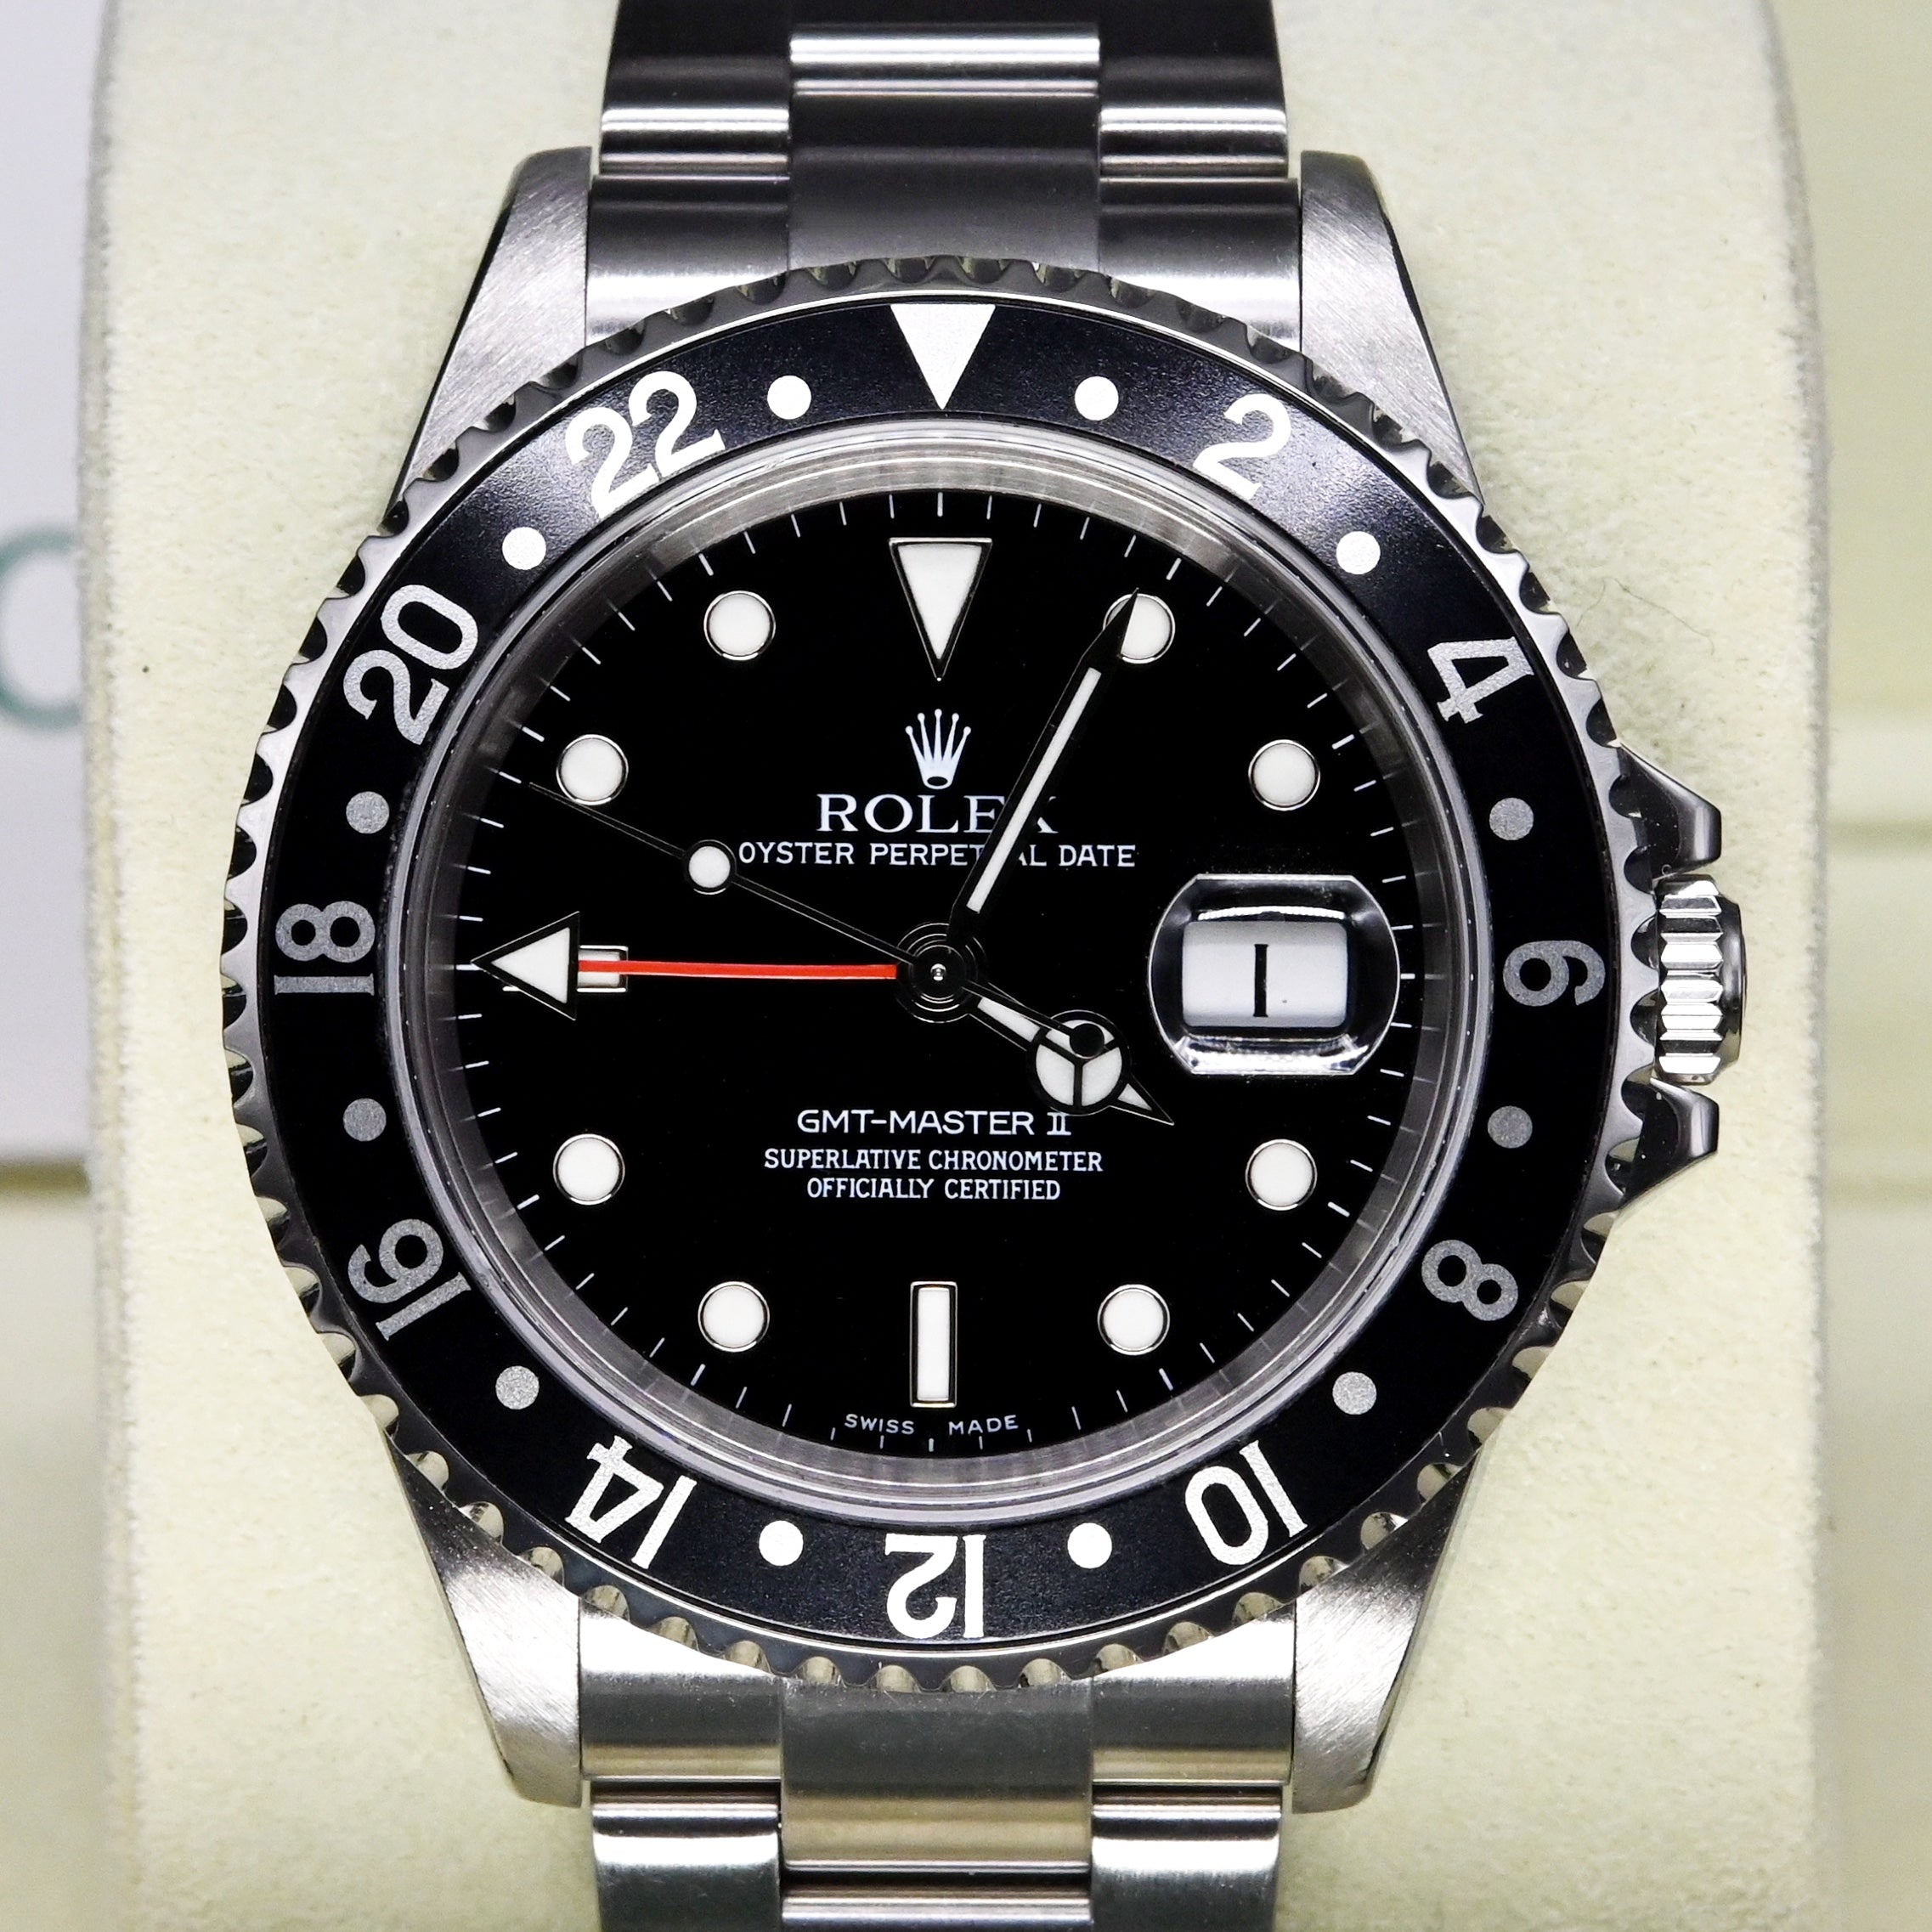 [Pre-Owned Watch] Rolex GMT-Master II 40mm 16710 Black Bezel (Out of Production) (888)